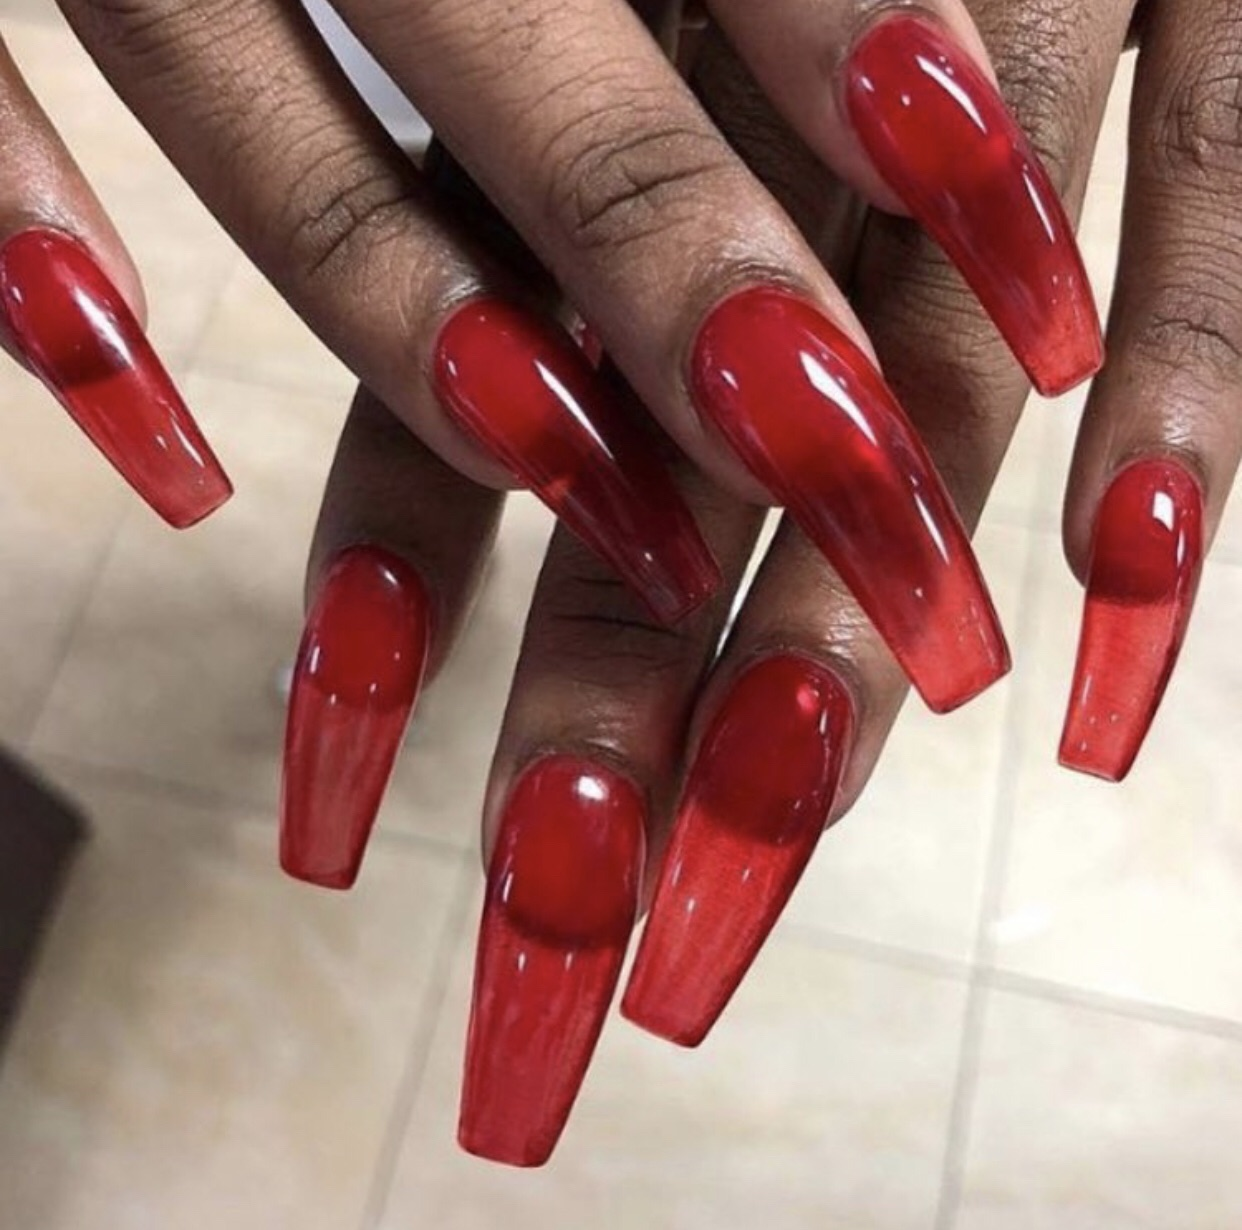 red jelly nails, nails, acrylic nails and acrylic